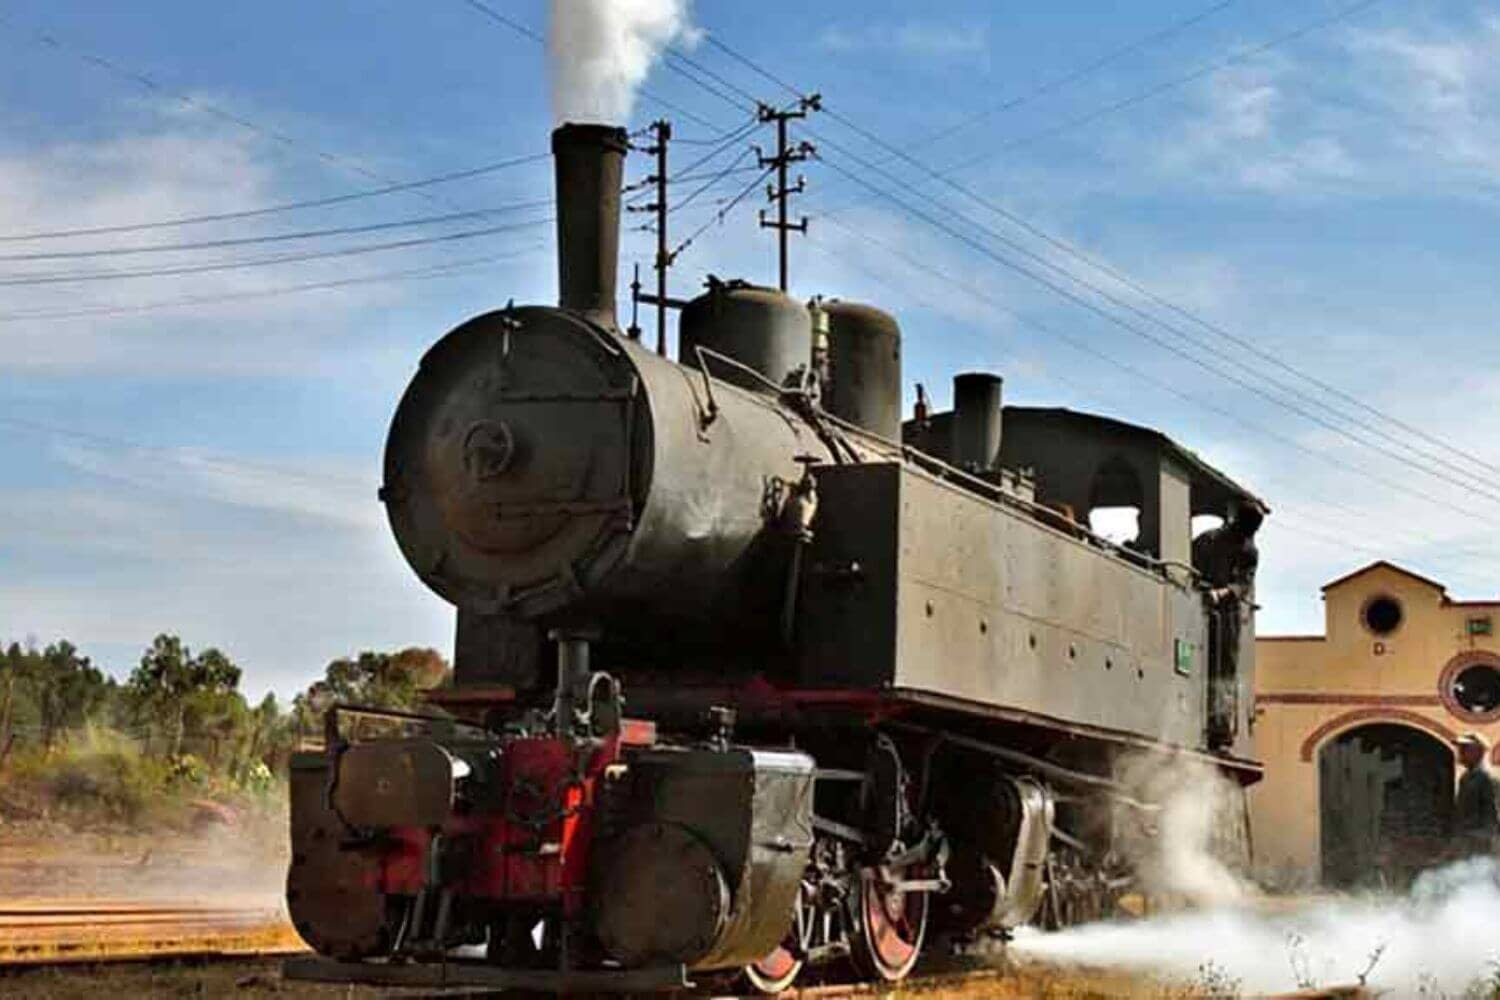 Eritrea Steam locomotive trains